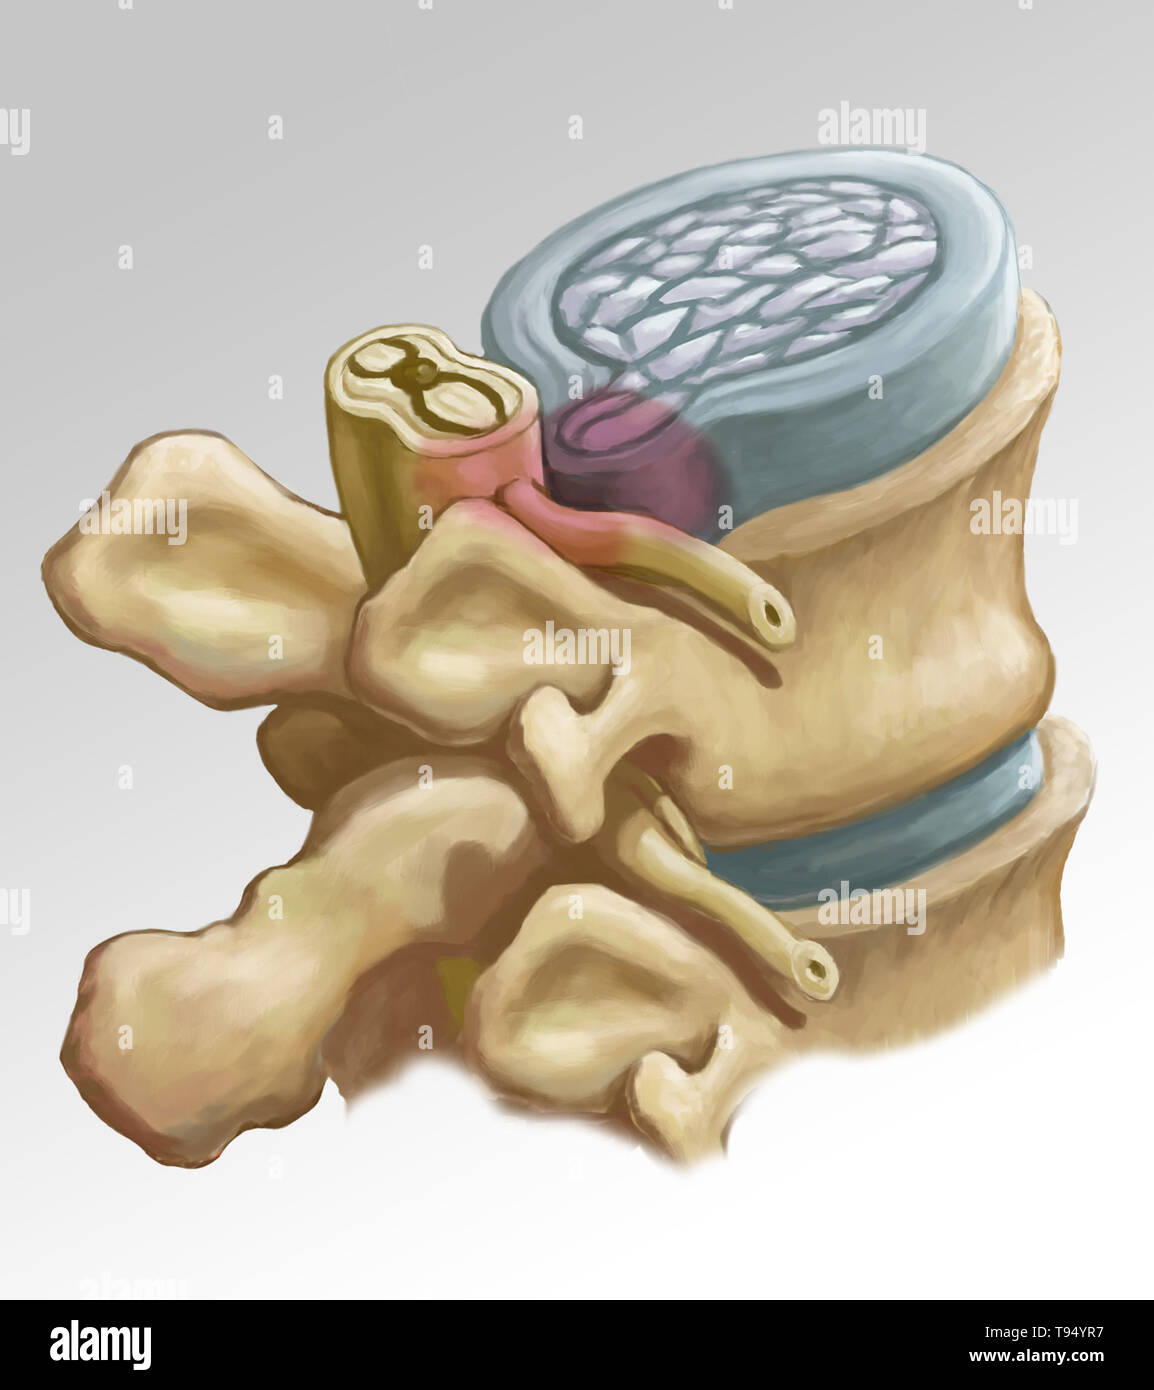 An illustration of the herniation of an intervertebral disk in the lumbar spine. Individuals suffer from a herniated disk when the outer fibrous tissue of the disk, known as the anulus fibrosus, can rupture due to trauma or old age. As a result, the gel-like center of the disk protrudes outward and compresses the nerves in the back, weakening muscles and causing severe local back pain. Stock Photo